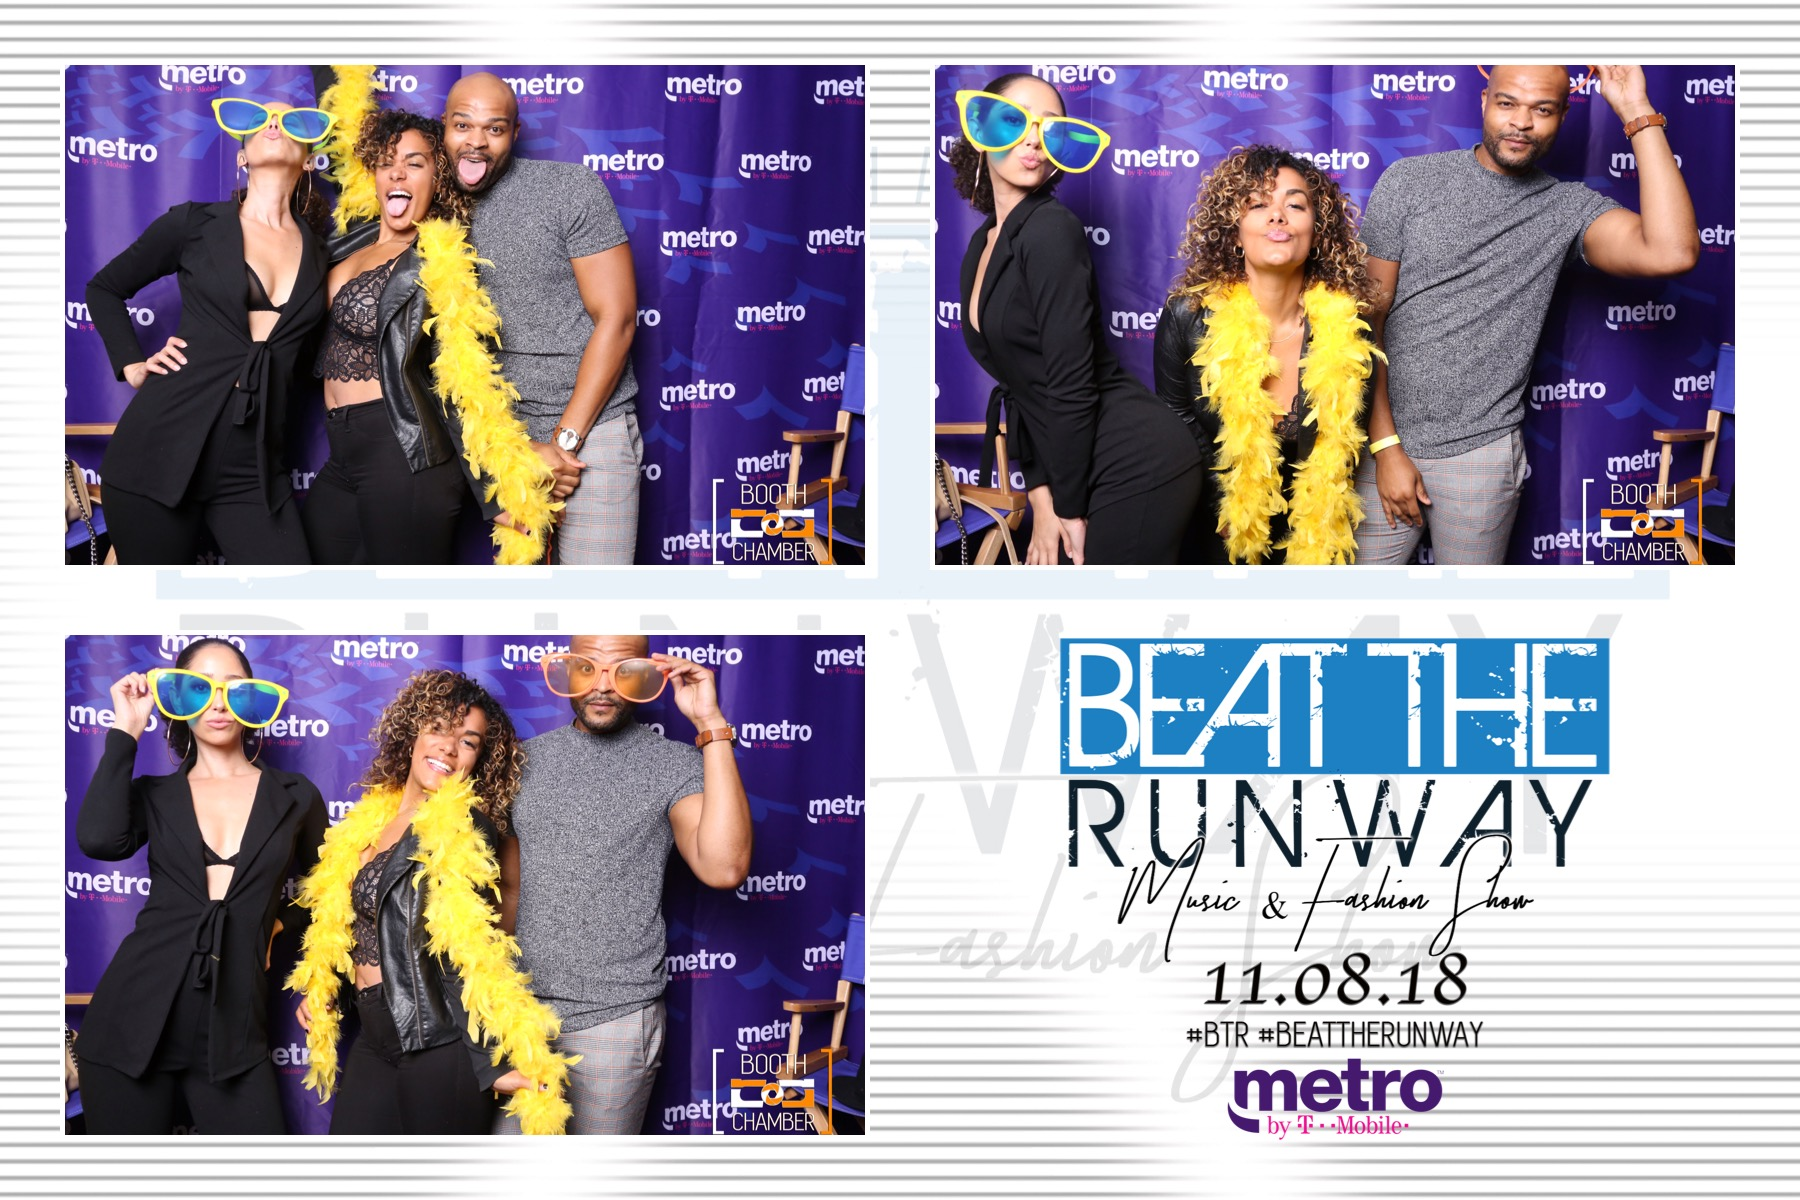 Booth Chamber Photo Booth Beat the Runway Antoine Hart 20181108_5.jpeg